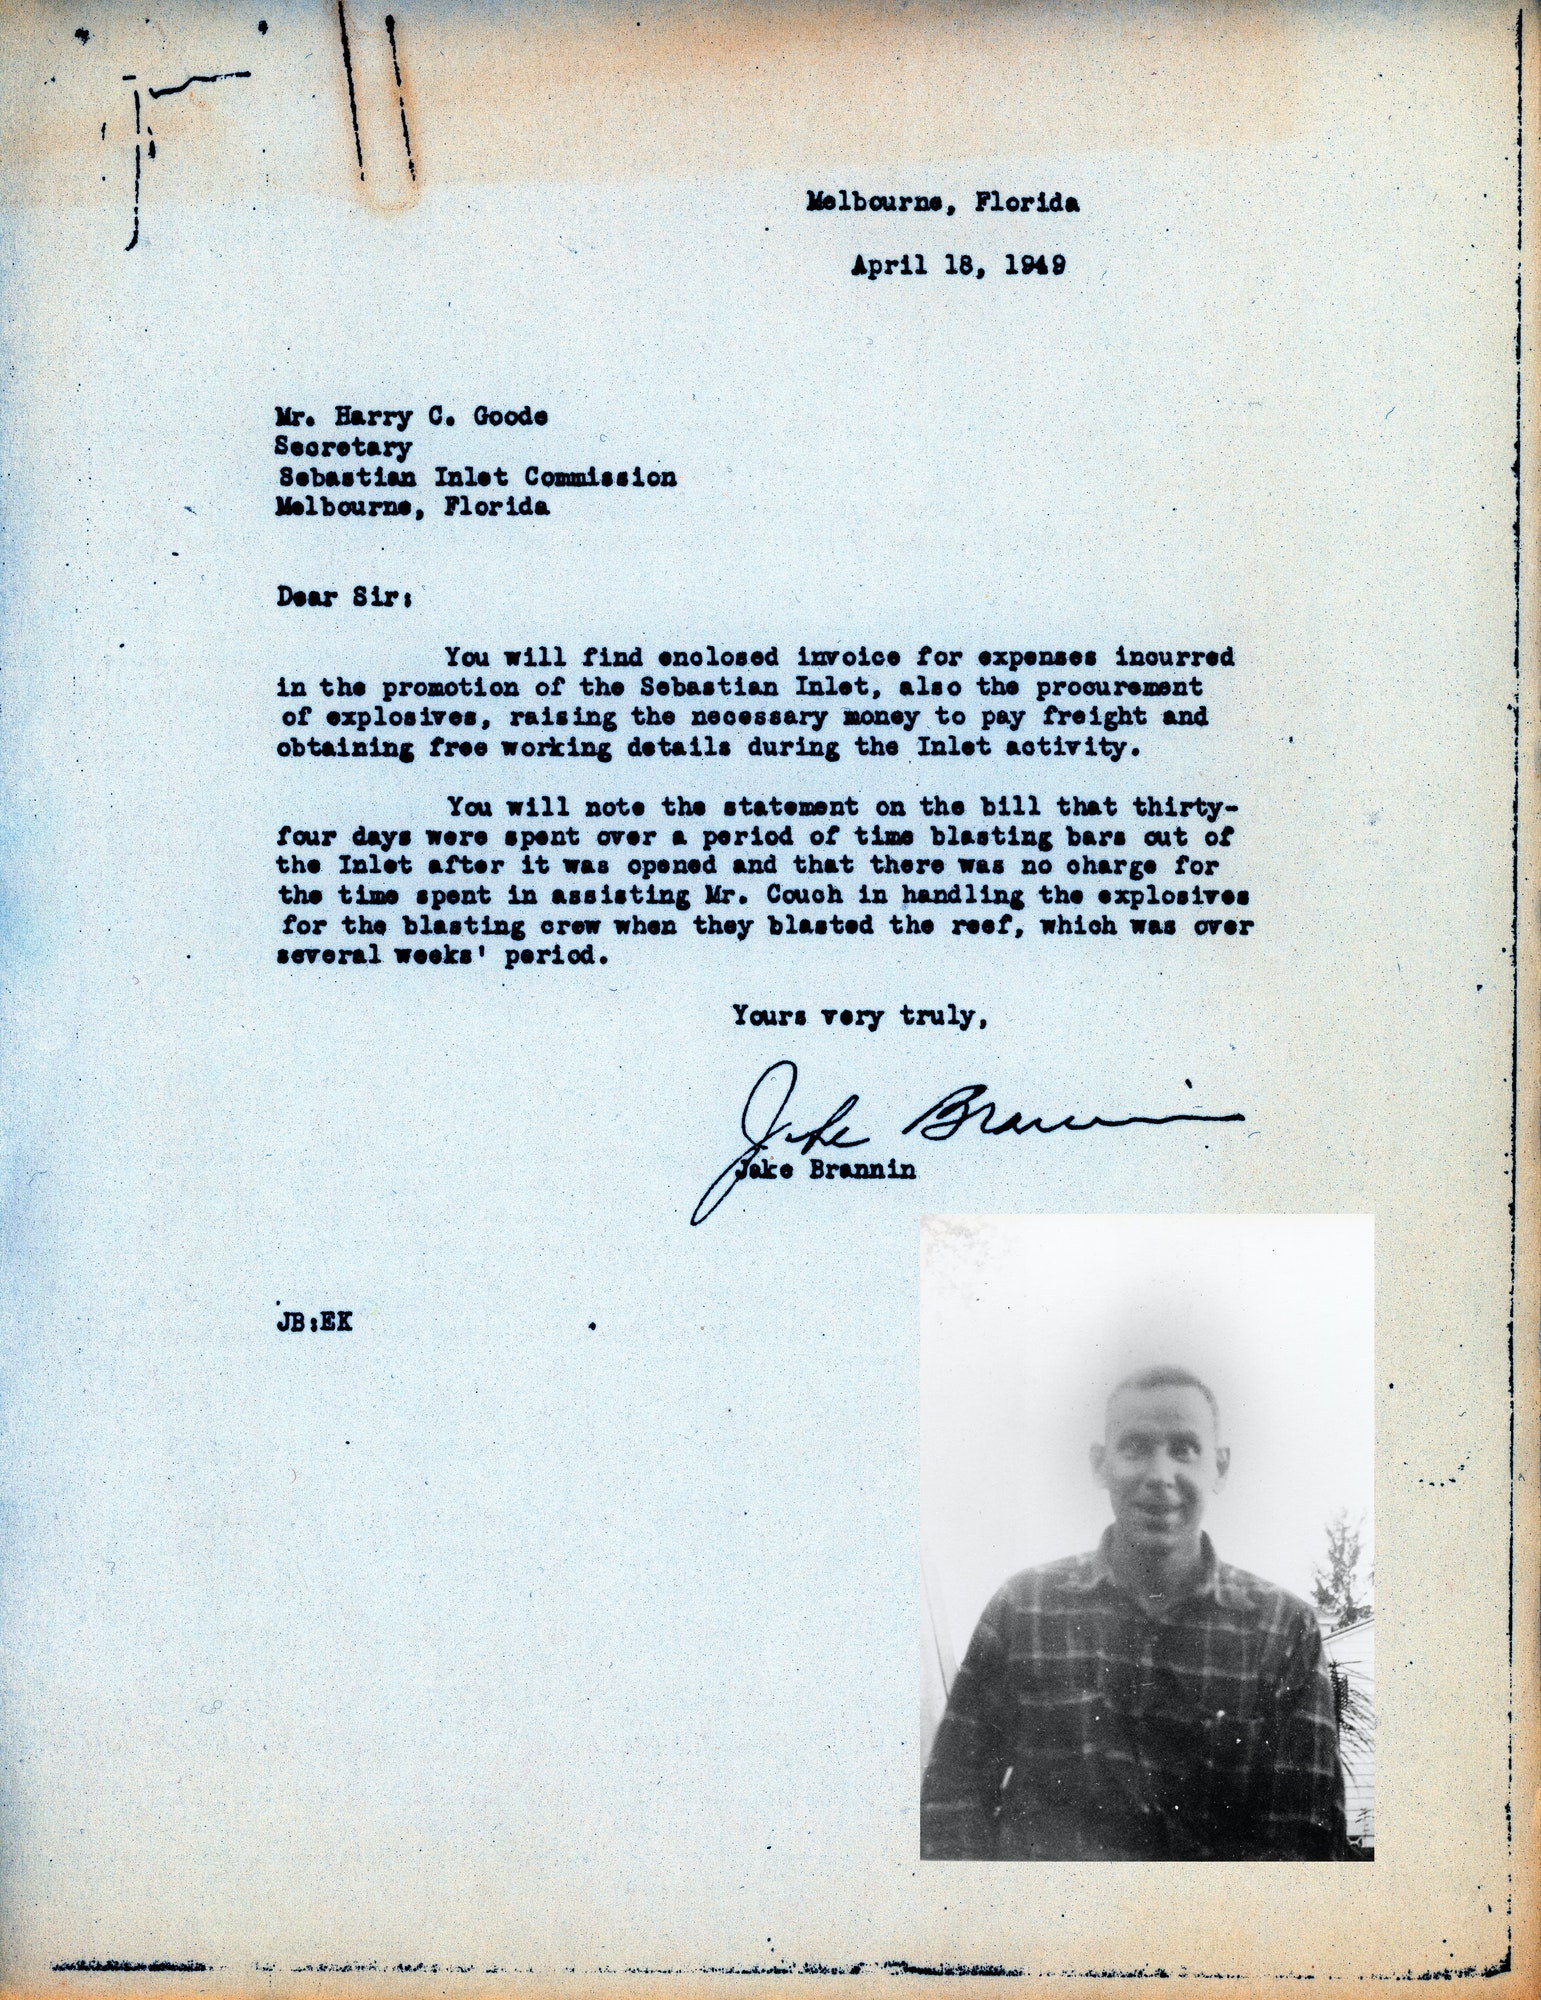 Typewritten and signed letter with image of person who wrote it superimposed under the signature line